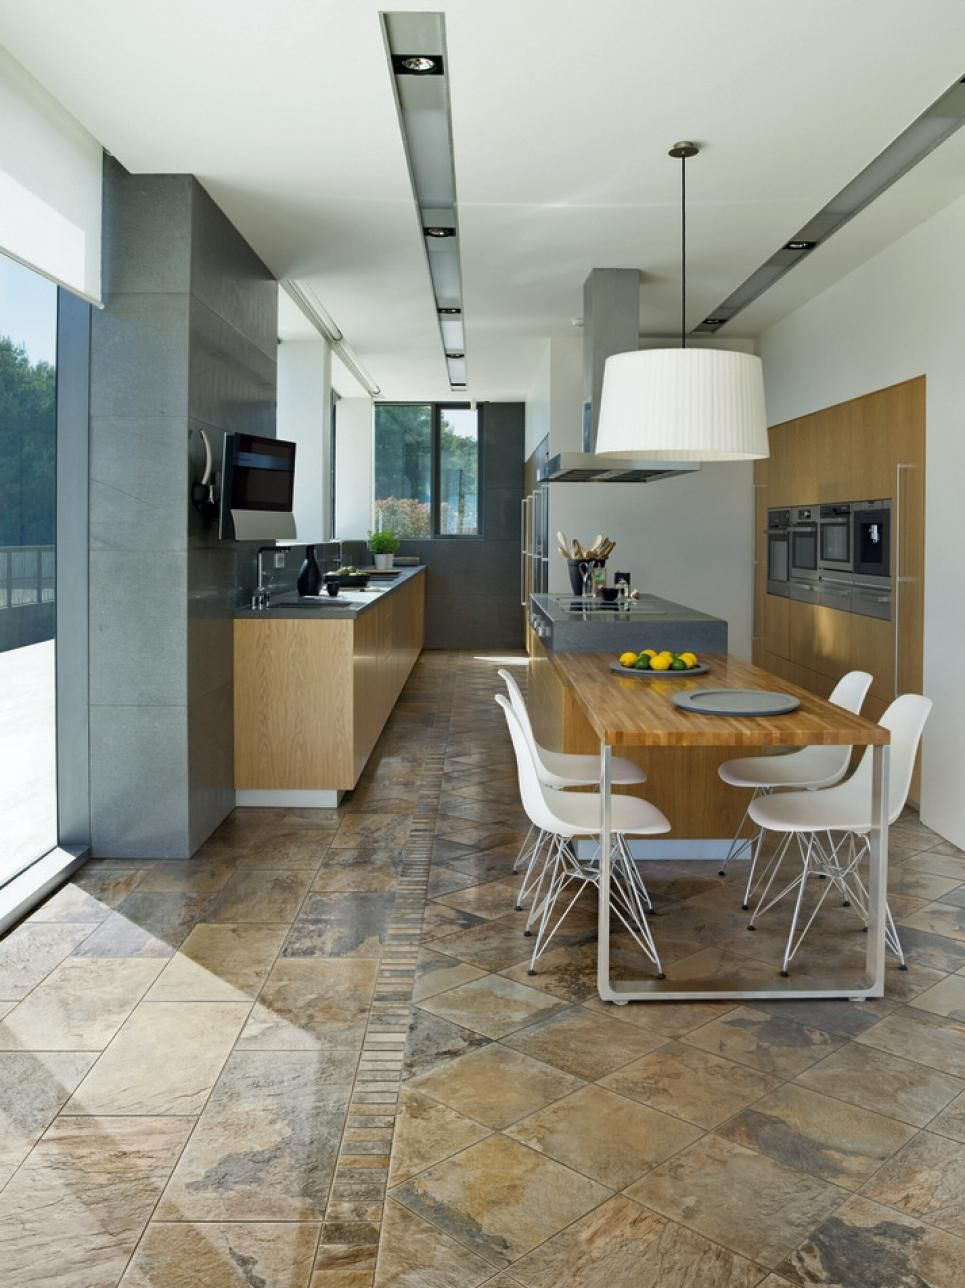 Porcelain tile works well in kitchens find a colour that works well with your cabinets and countertops